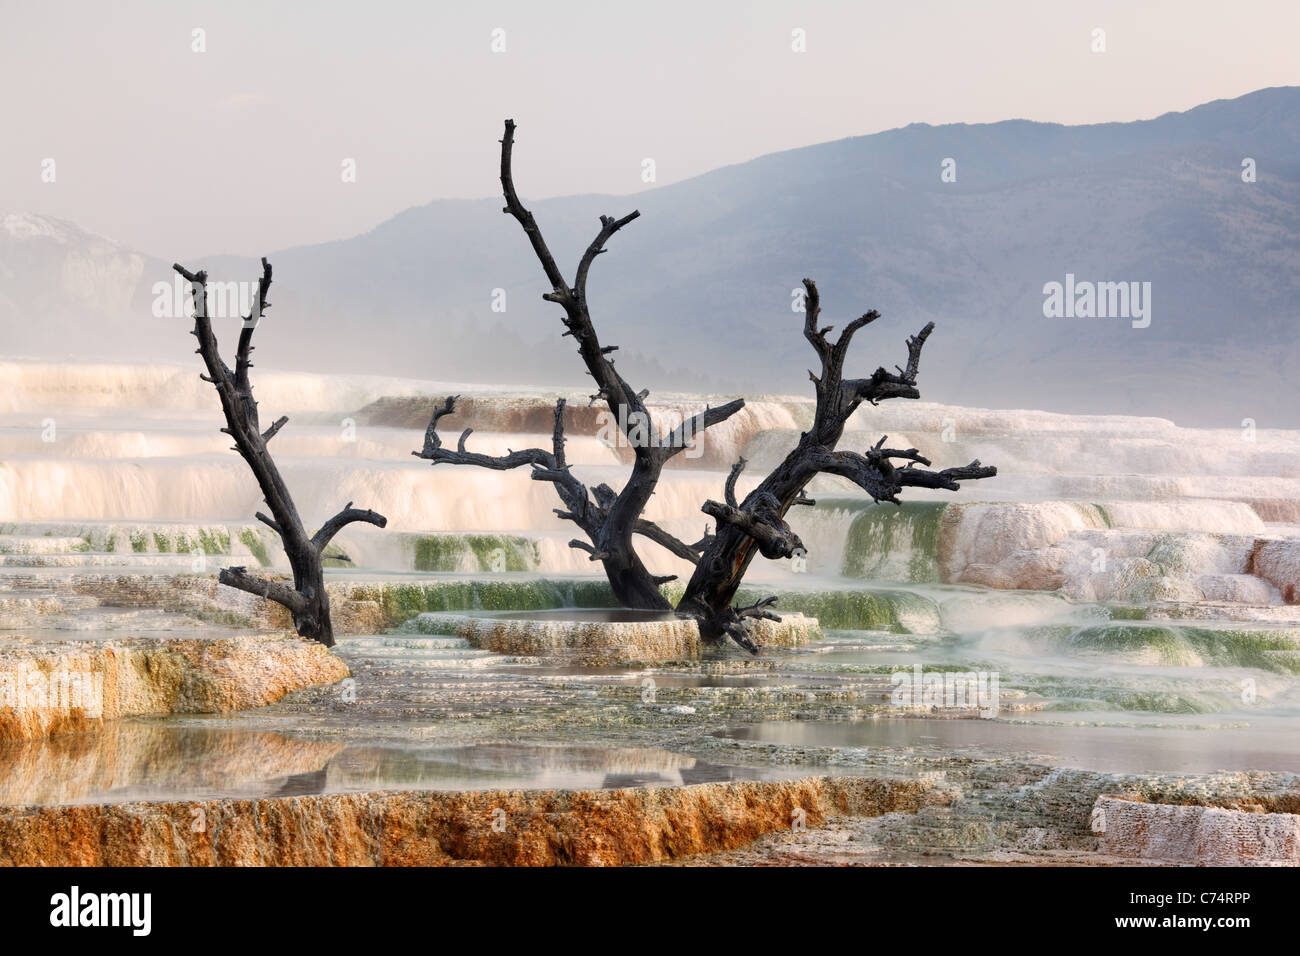 Dead tree on travertine terraces at Mammoth Hot Springs, Yellowstone National Park, Wyoming, USA - Stock Image